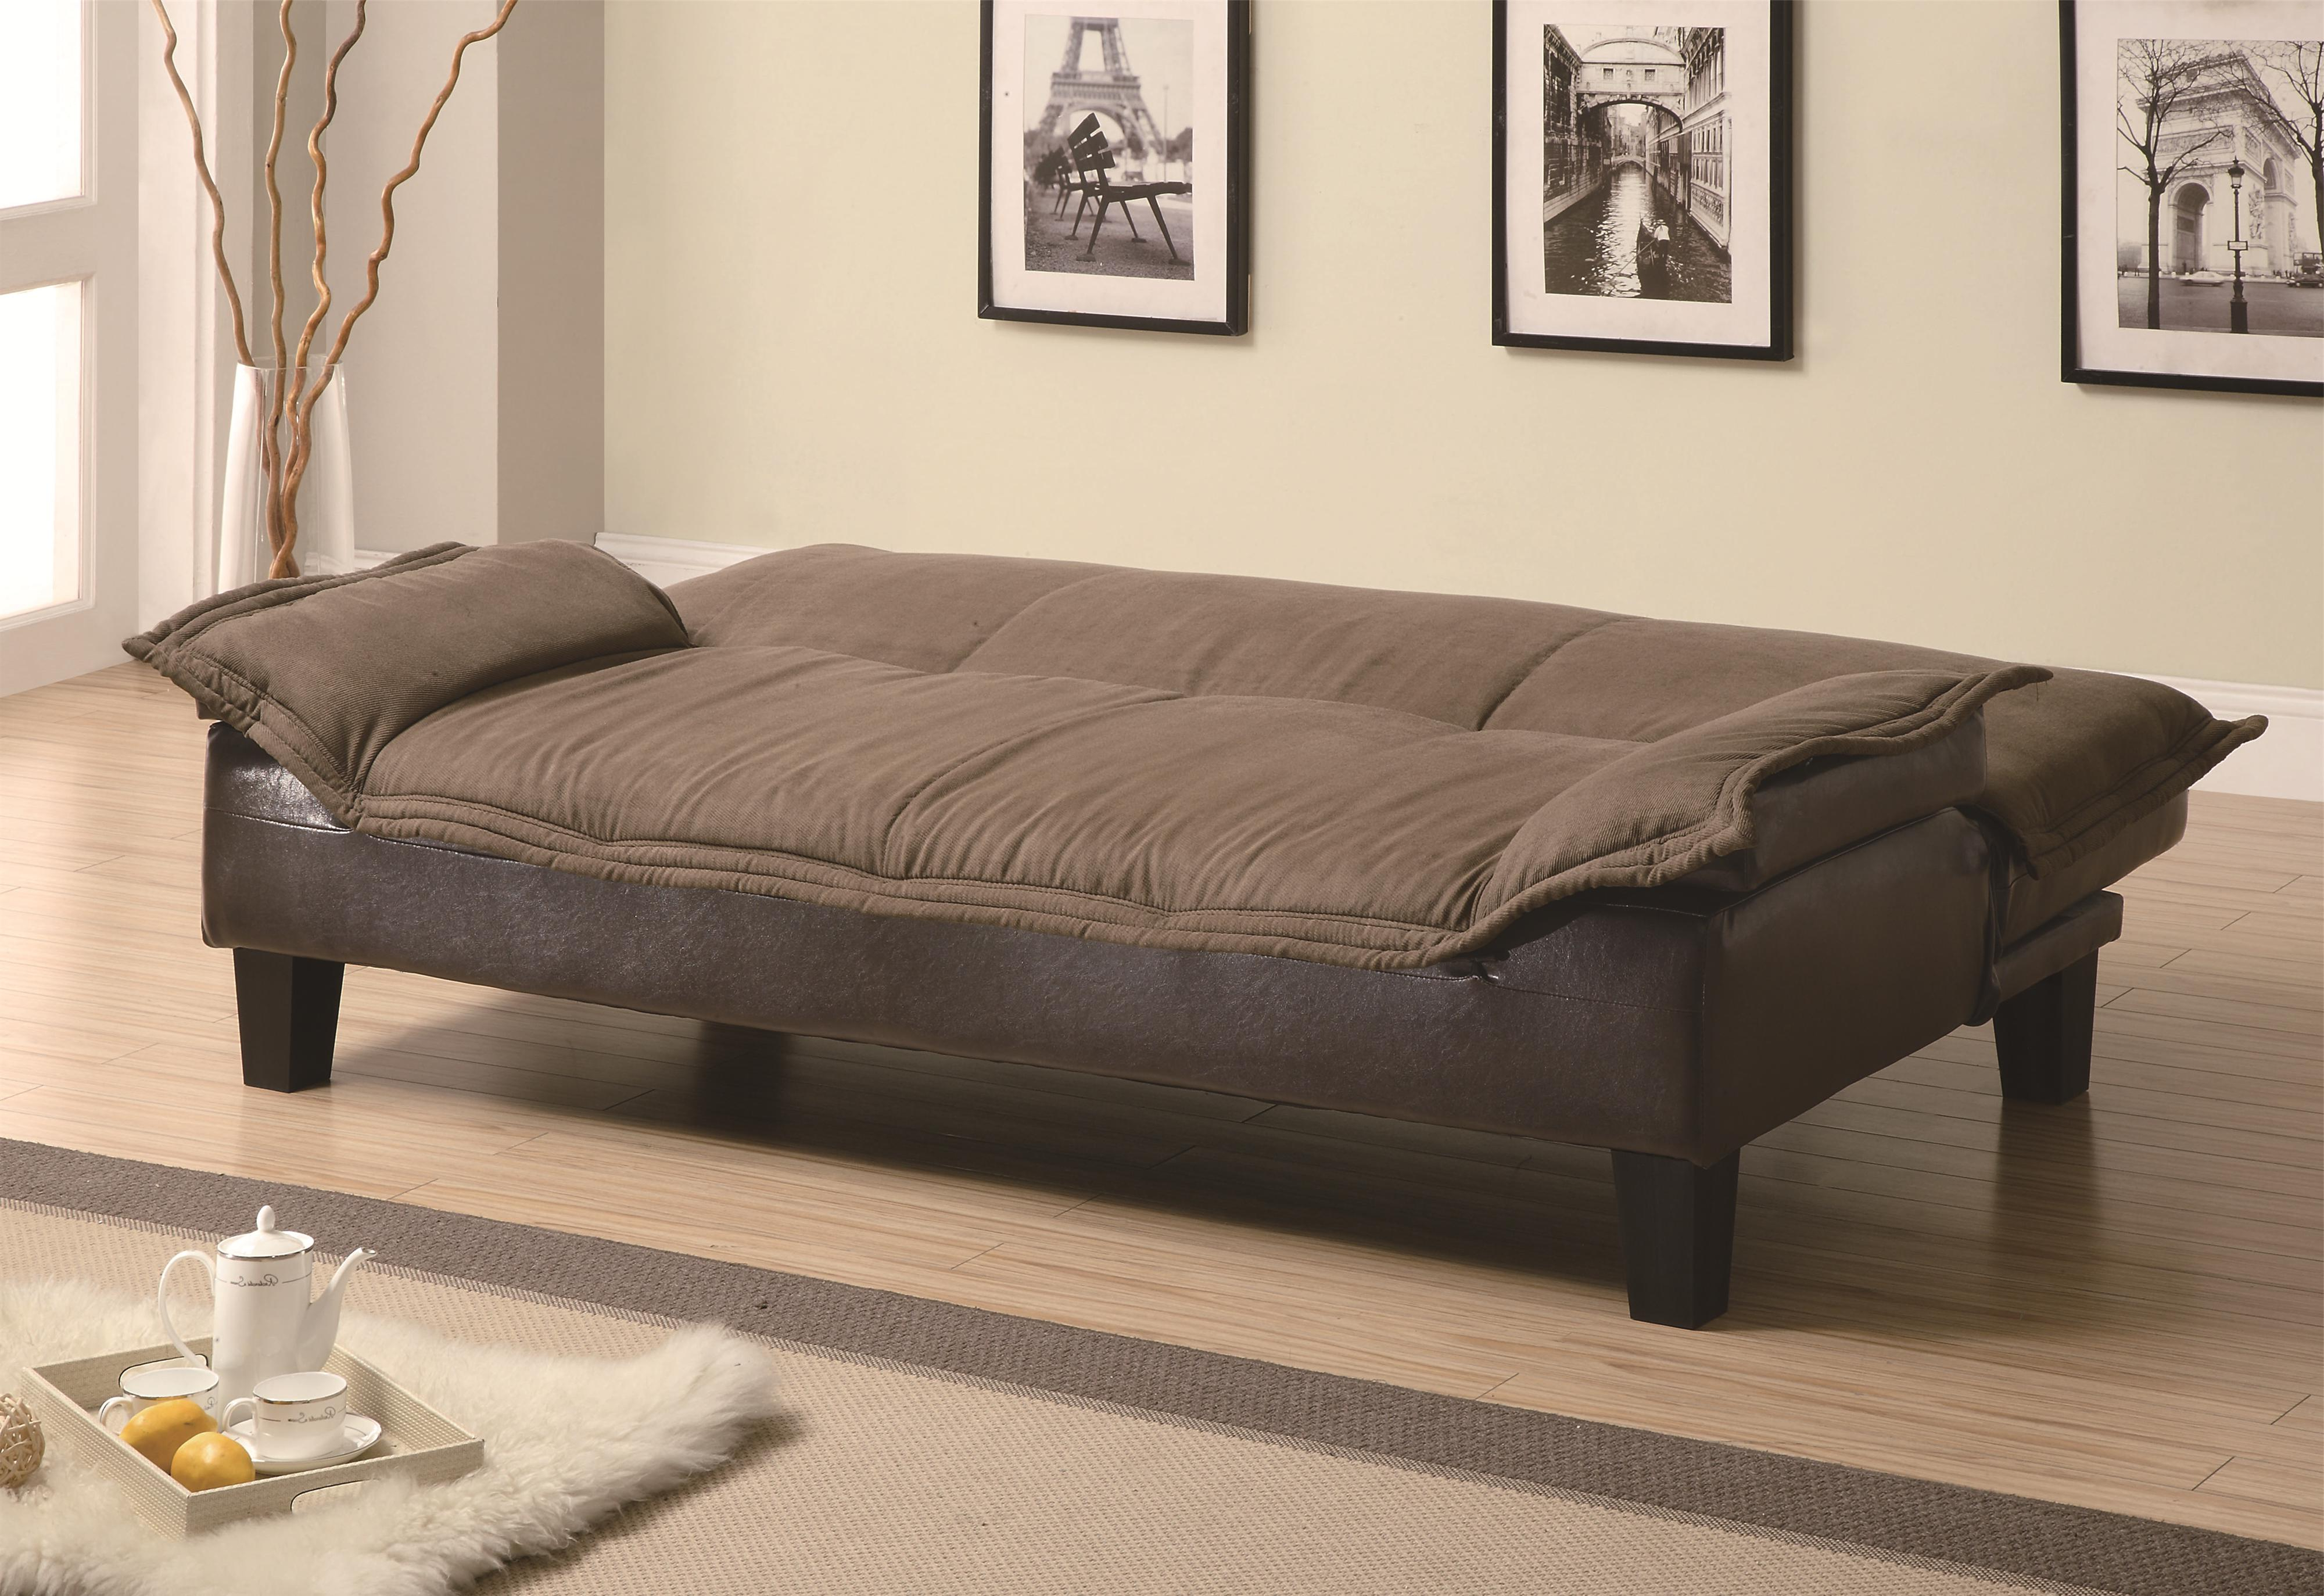 Coaster Sofa Beds And Futons Ratchet Back Sofa Bed With Dark Brown With Regard To Fashionable Sofa Beds Chairs (Gallery 19 of 20)